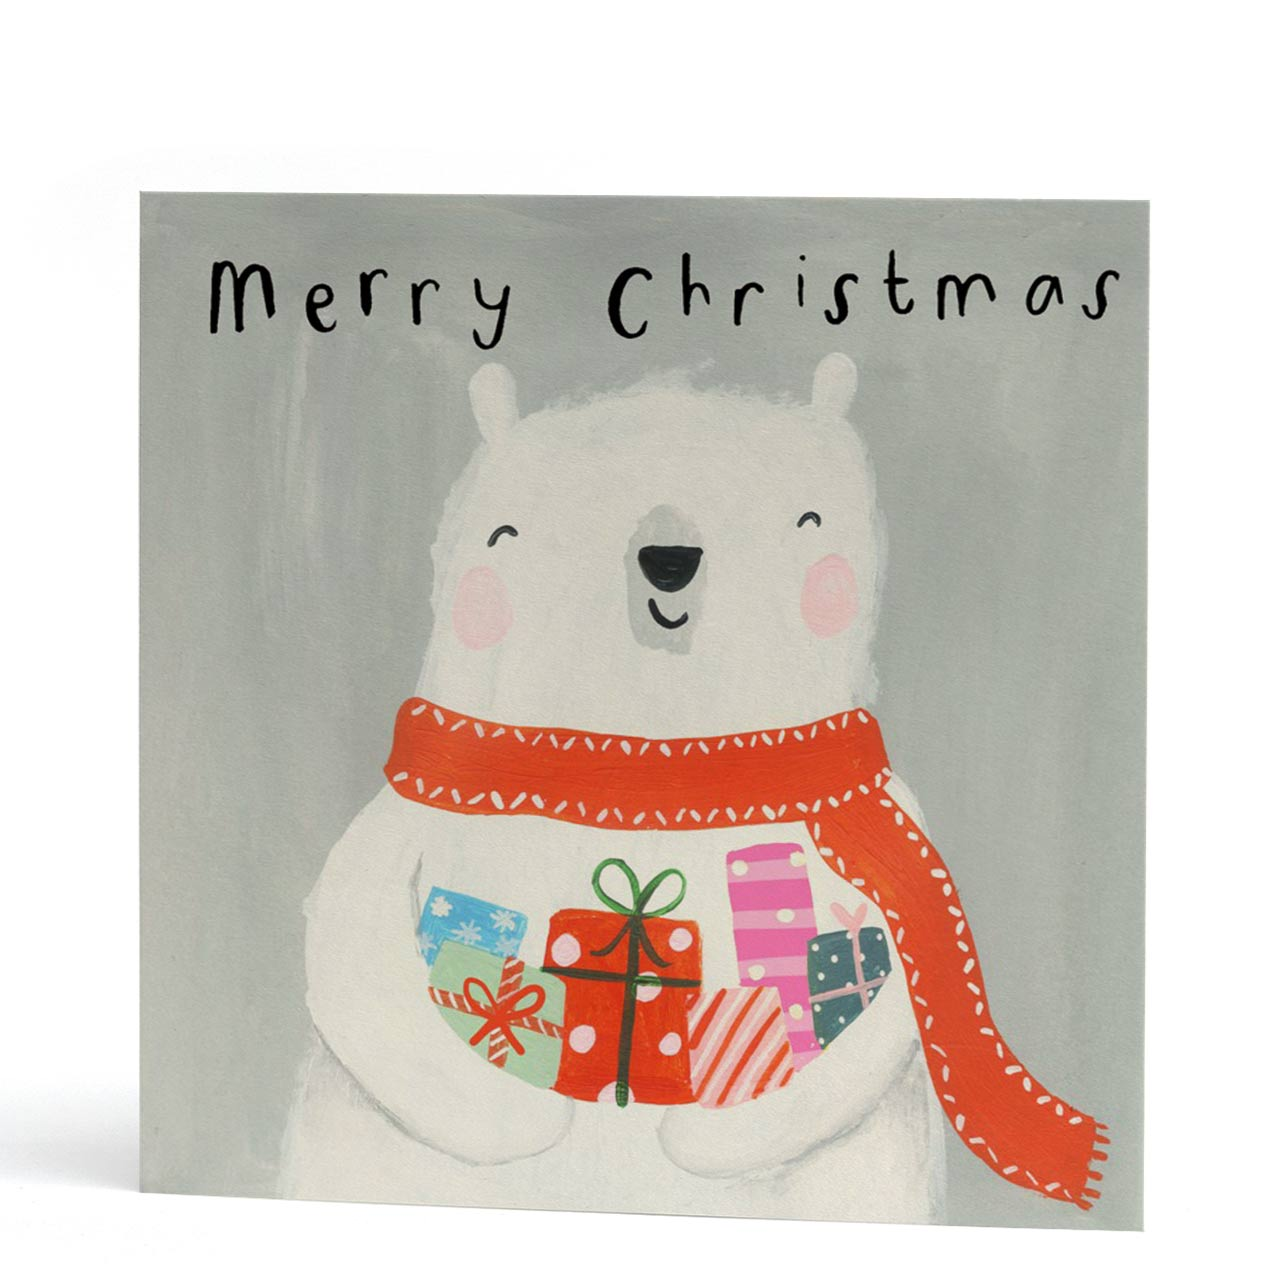 Merry Christmas Polar Bear Presents Card